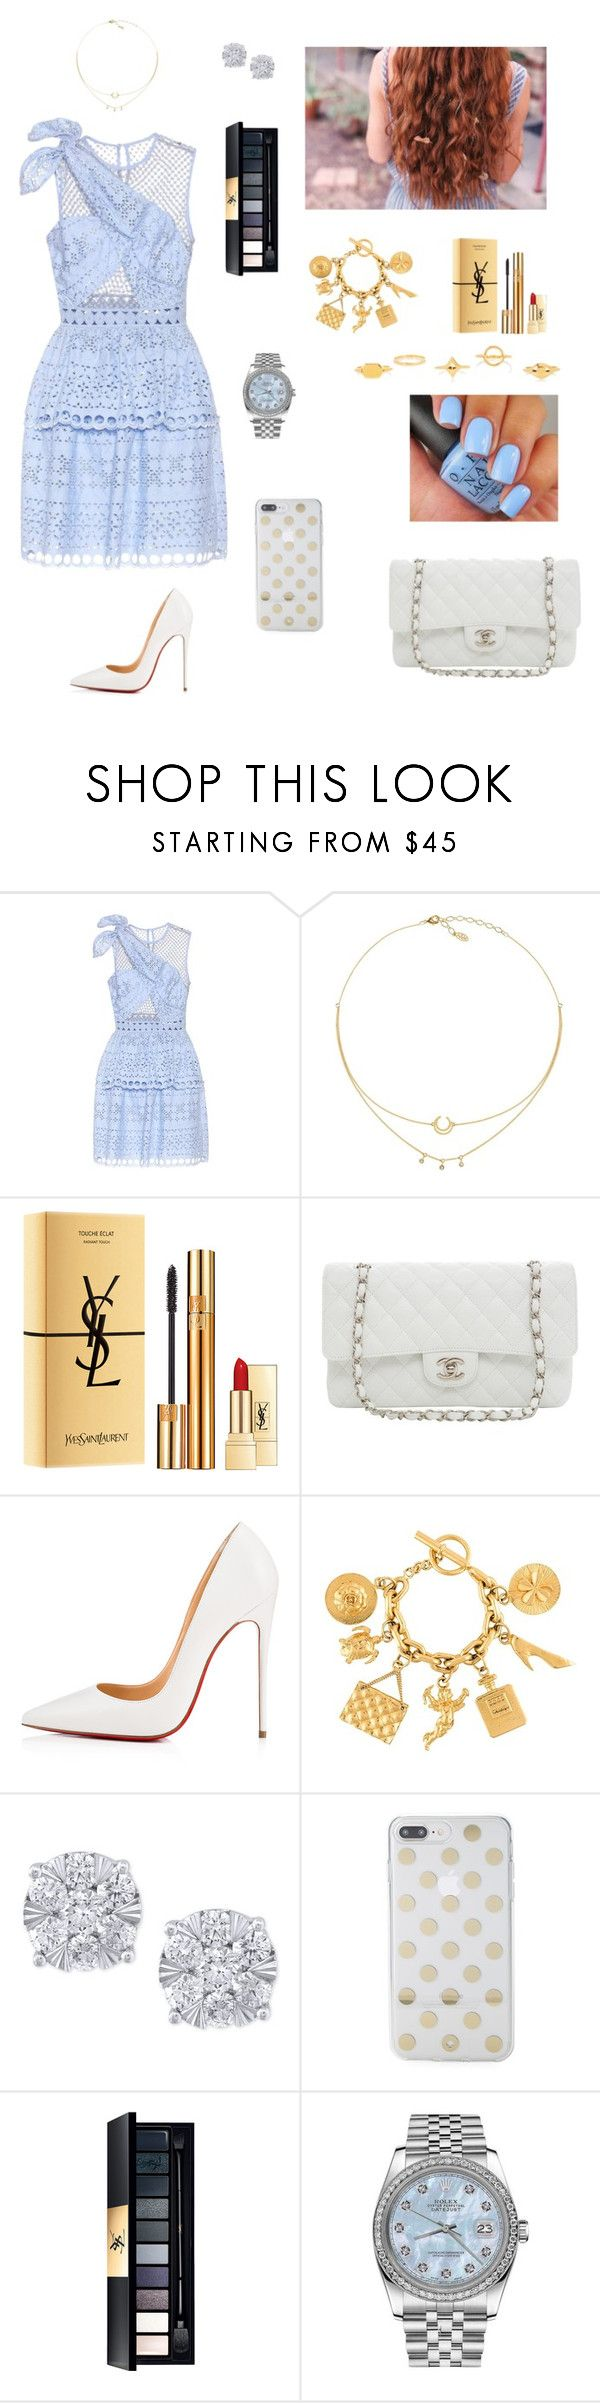 """""""#234"""" by tamara-wolfram ❤ liked on Polyvore featuring self-portrait, Yves Saint Laurent, Karl Lagerfeld, Christian Louboutin, Chanel, Effy Jewelry, Kate Spade, Rolex and Chloé"""